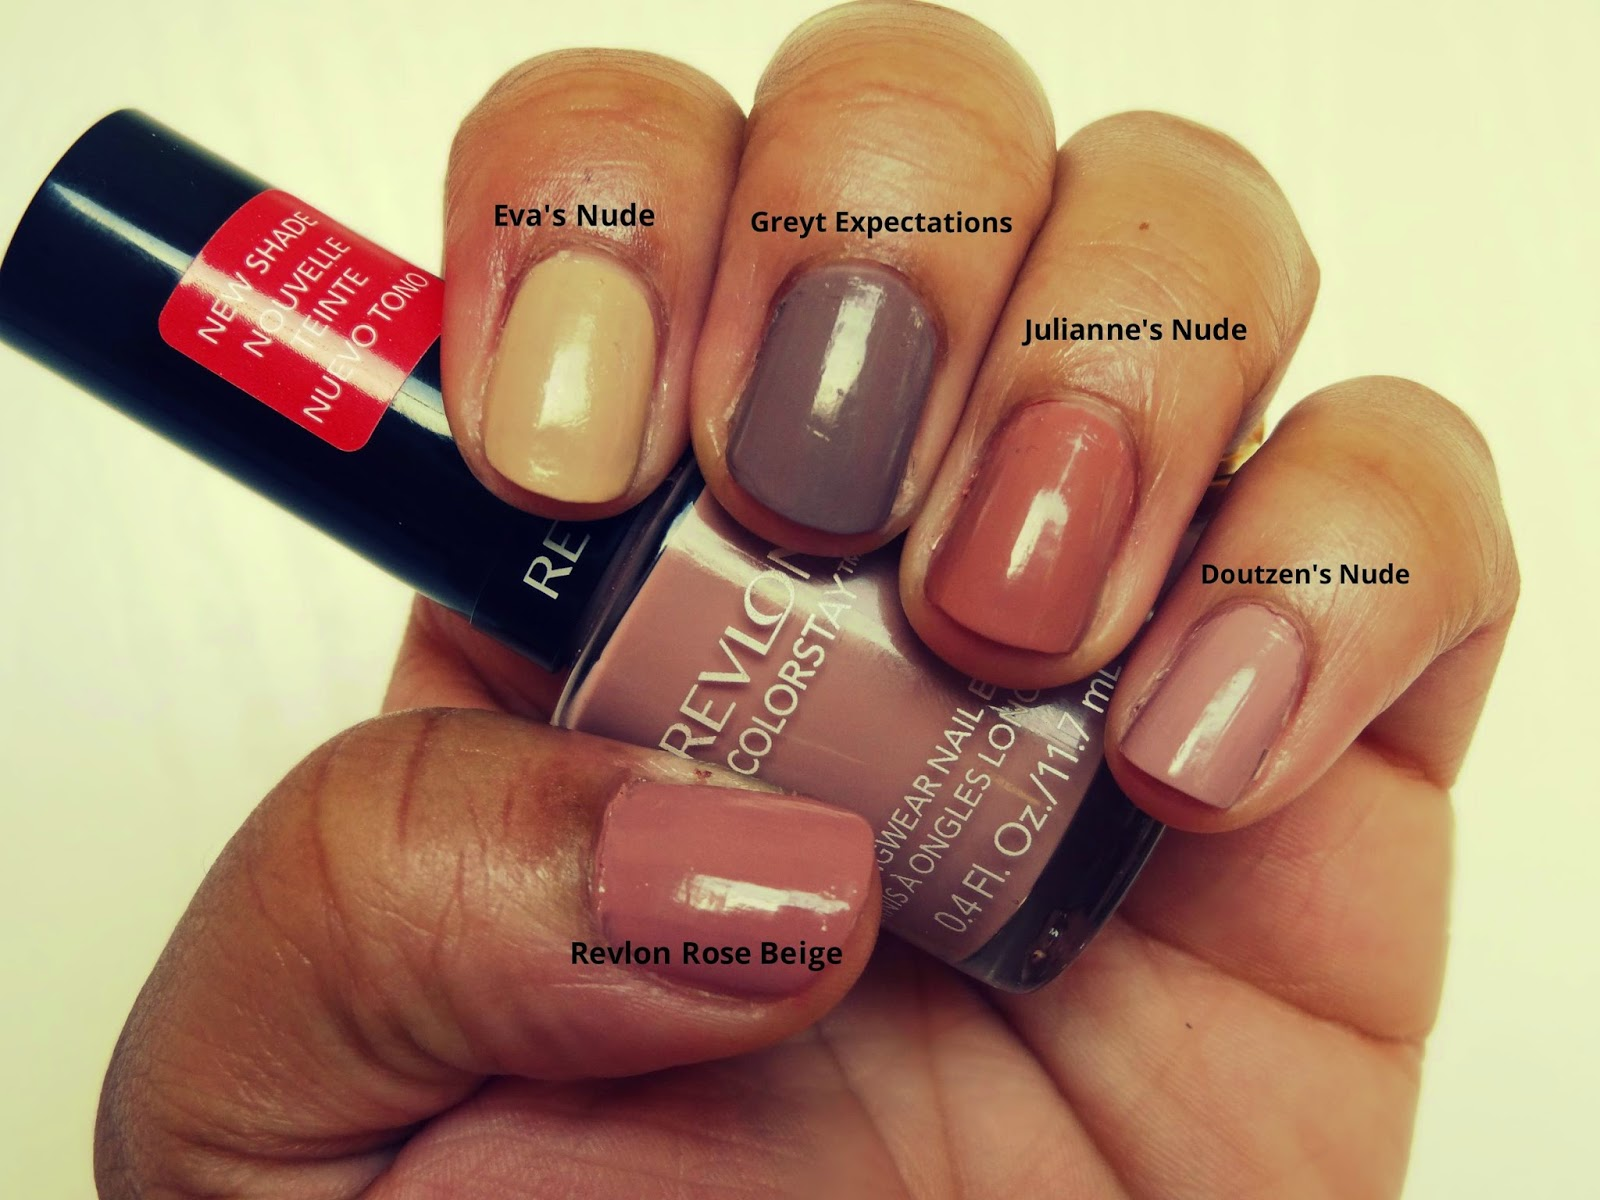 swatches of Top 5 Nude Polishes for Fall 2014